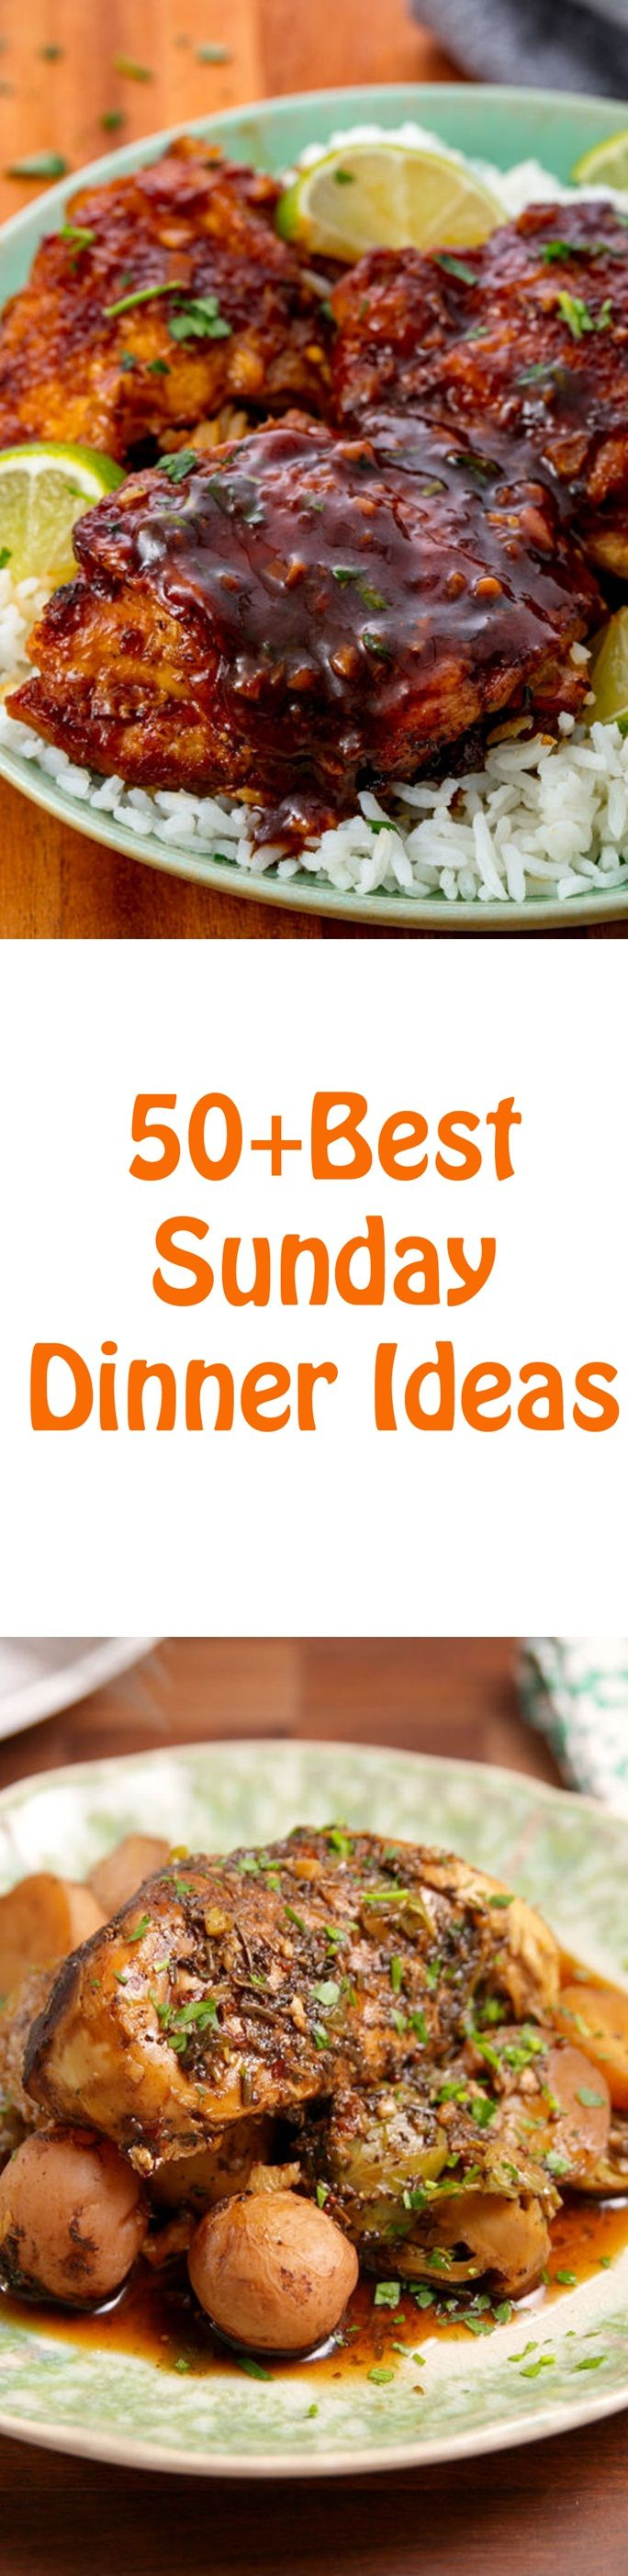 50 best sunday dinner ideas for two or family sunday dinners 50 best sunday dinner ideas menu sunday dinner ideas for southern fall summer food network winter with easy recipes quick dinner ideas to cook with forumfinder Images